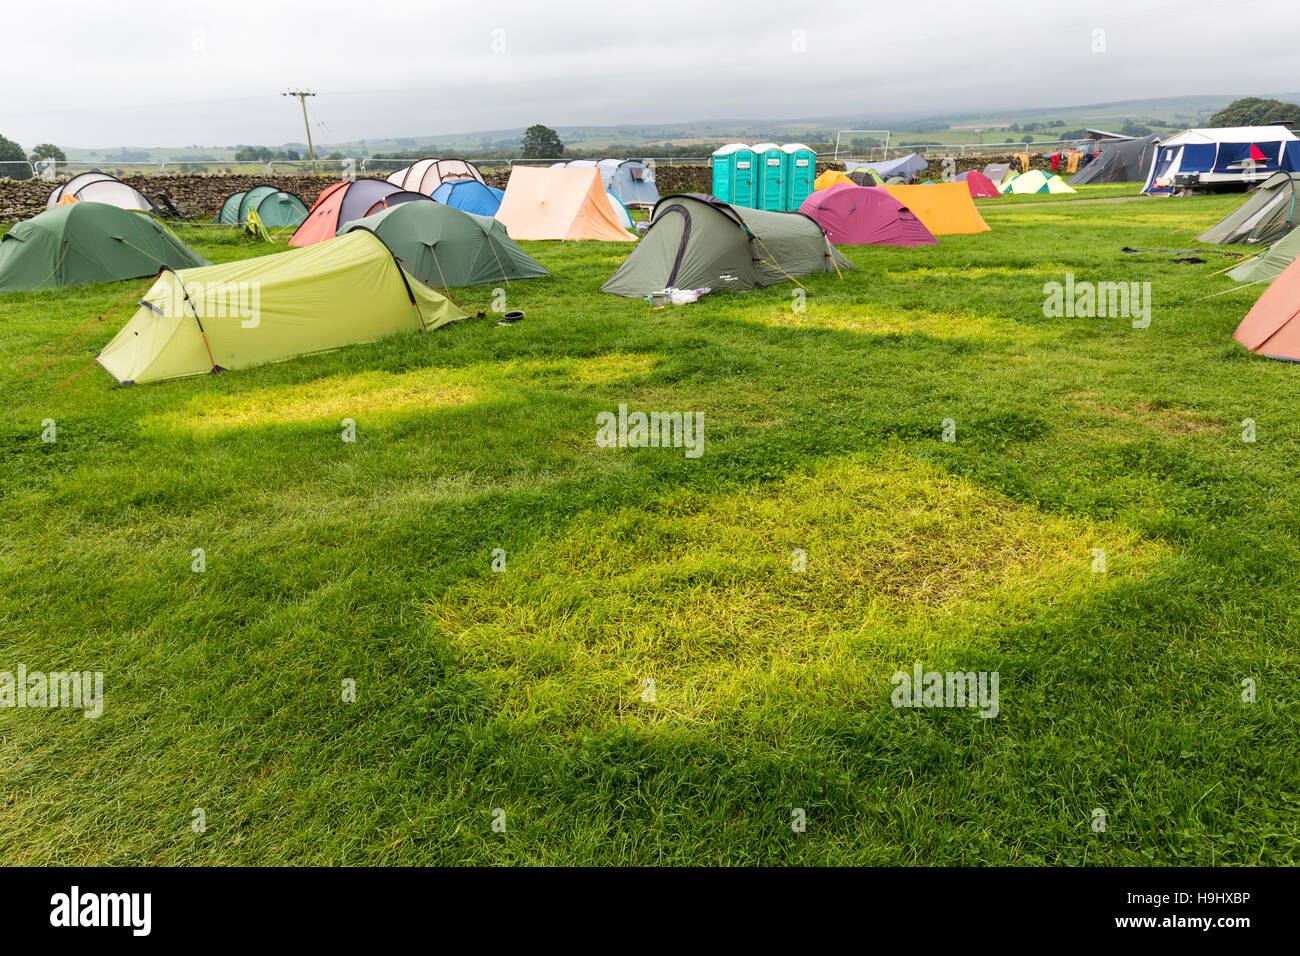 Grass affected by tent cover on campsite, Yorkshire, UK - Stock Image